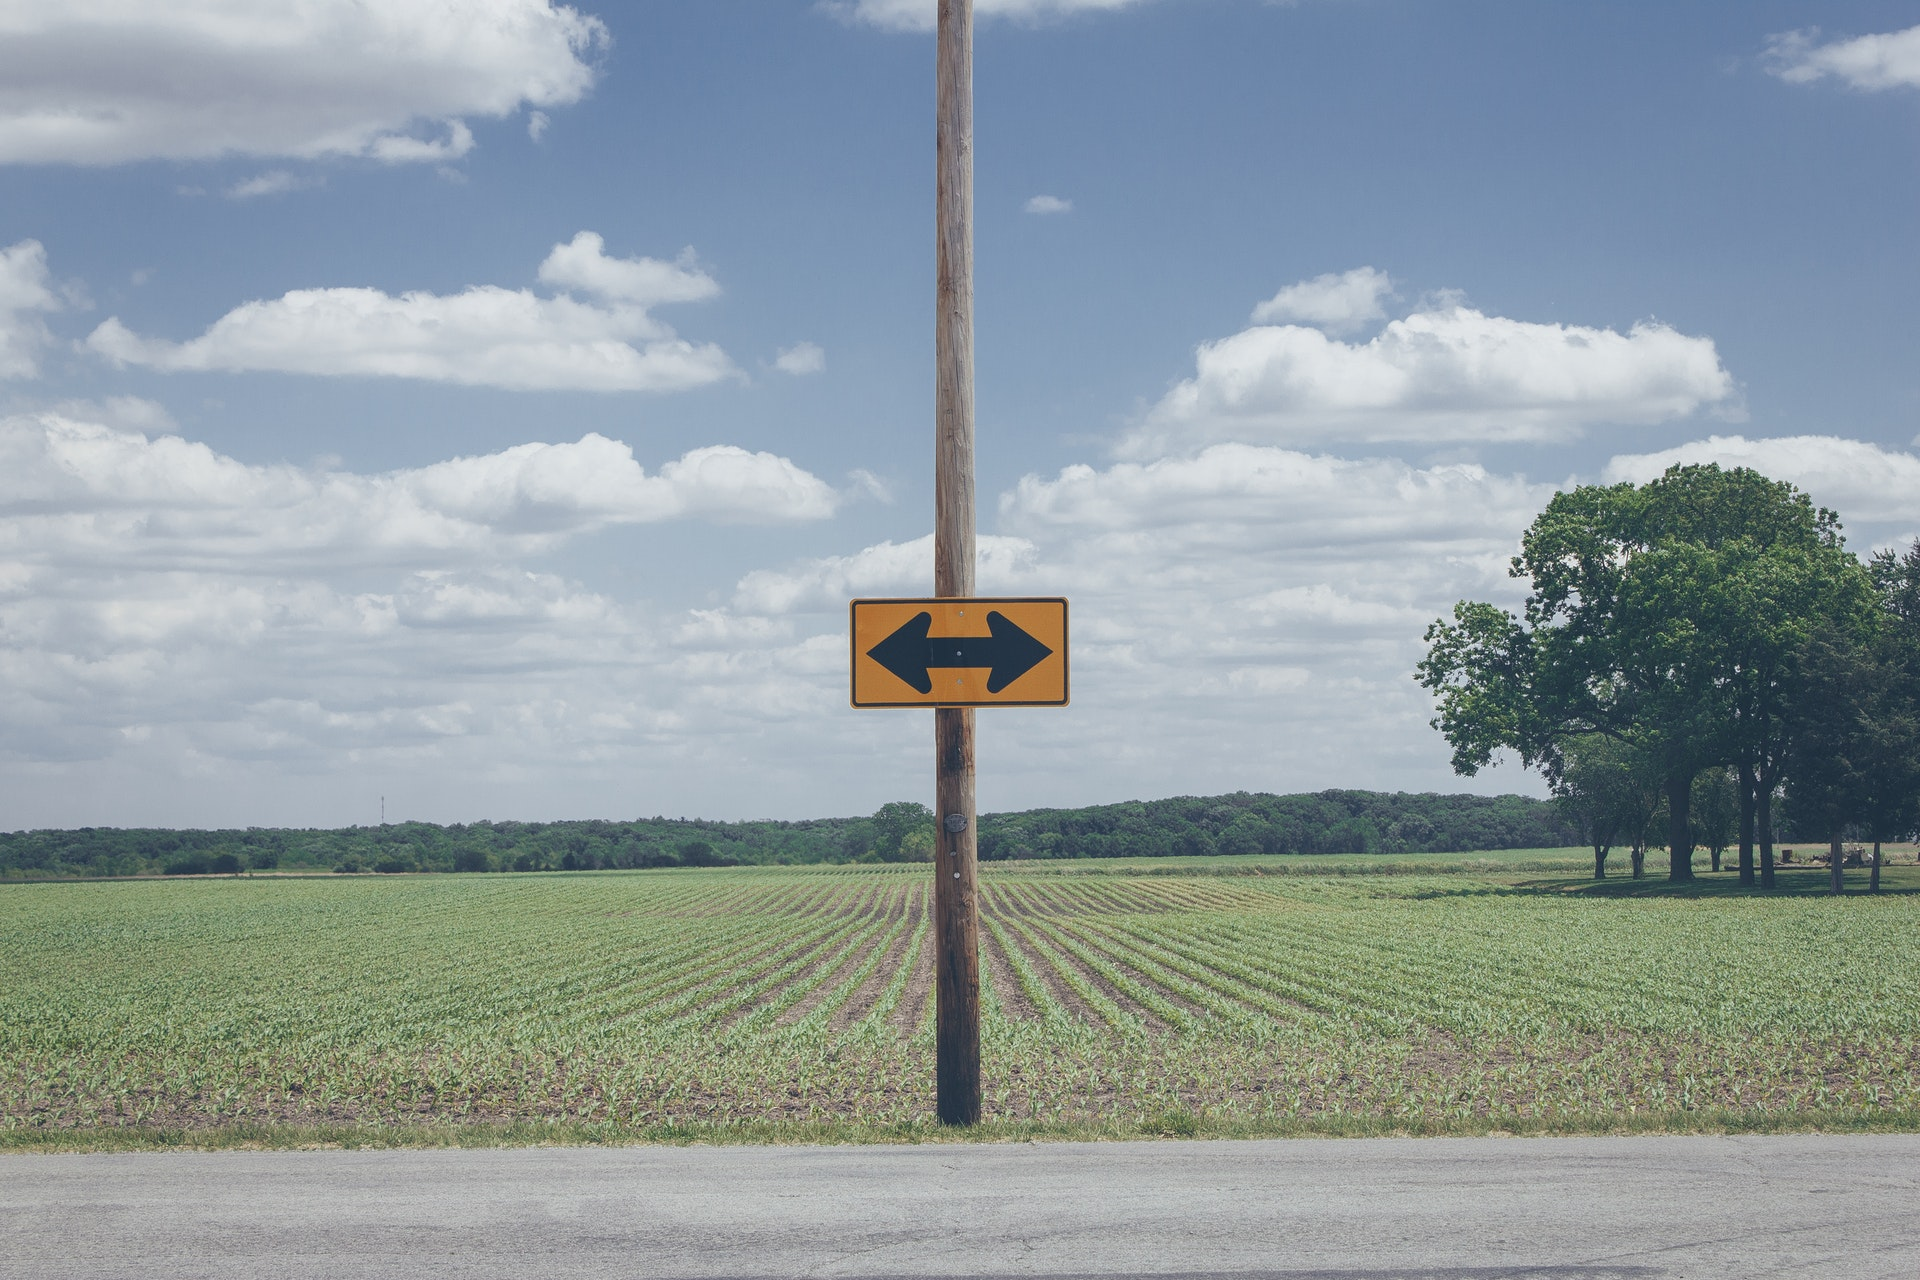 Sign pointing in two directions